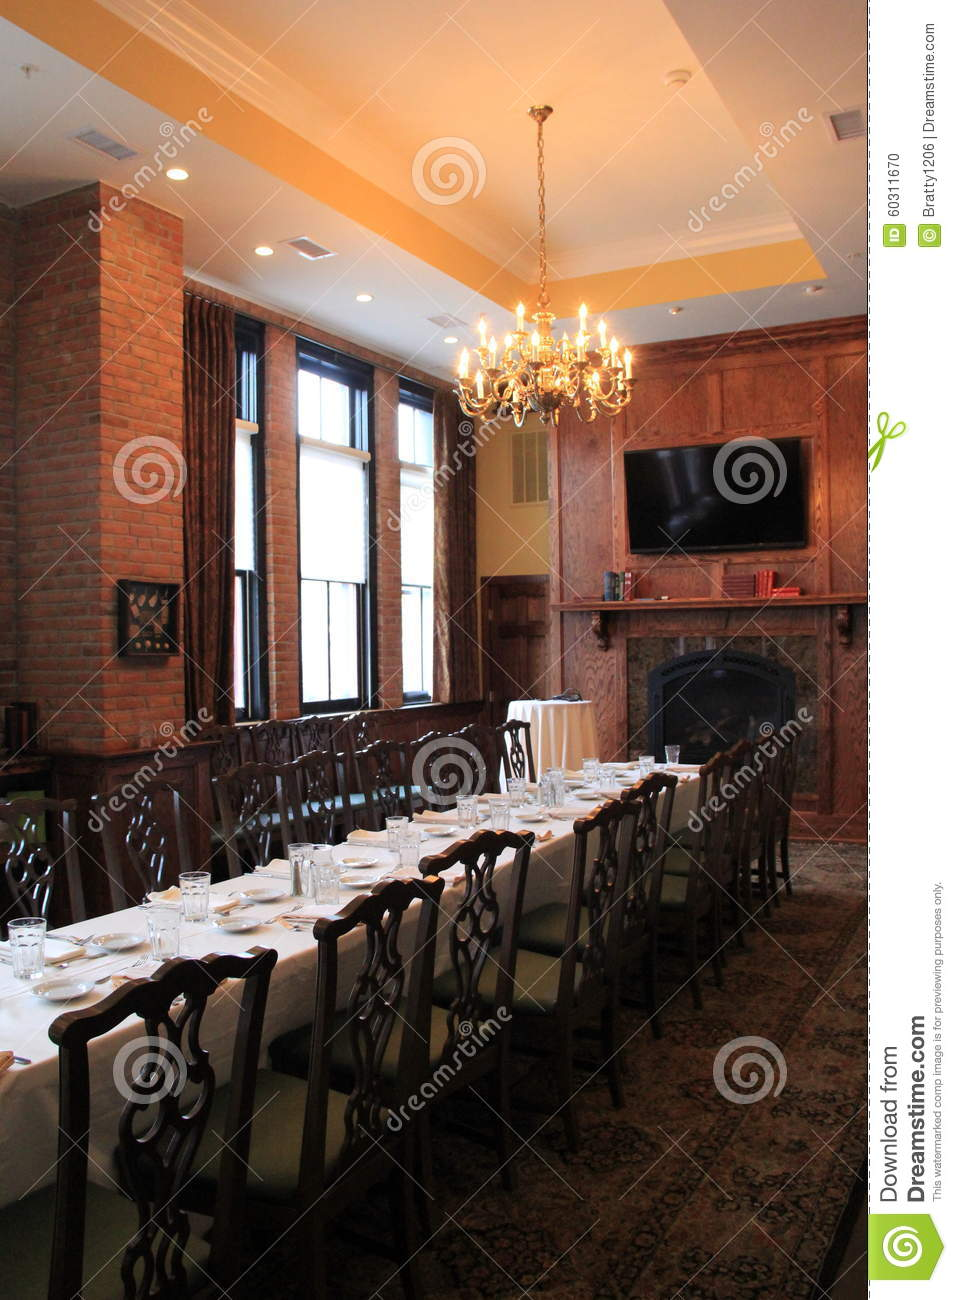 Elaborate Details In Longdark Color Of Wood Table And Chairs Set For Dinner Party Gorgeous Private Meeting RoomHarveys Restaurant Bar